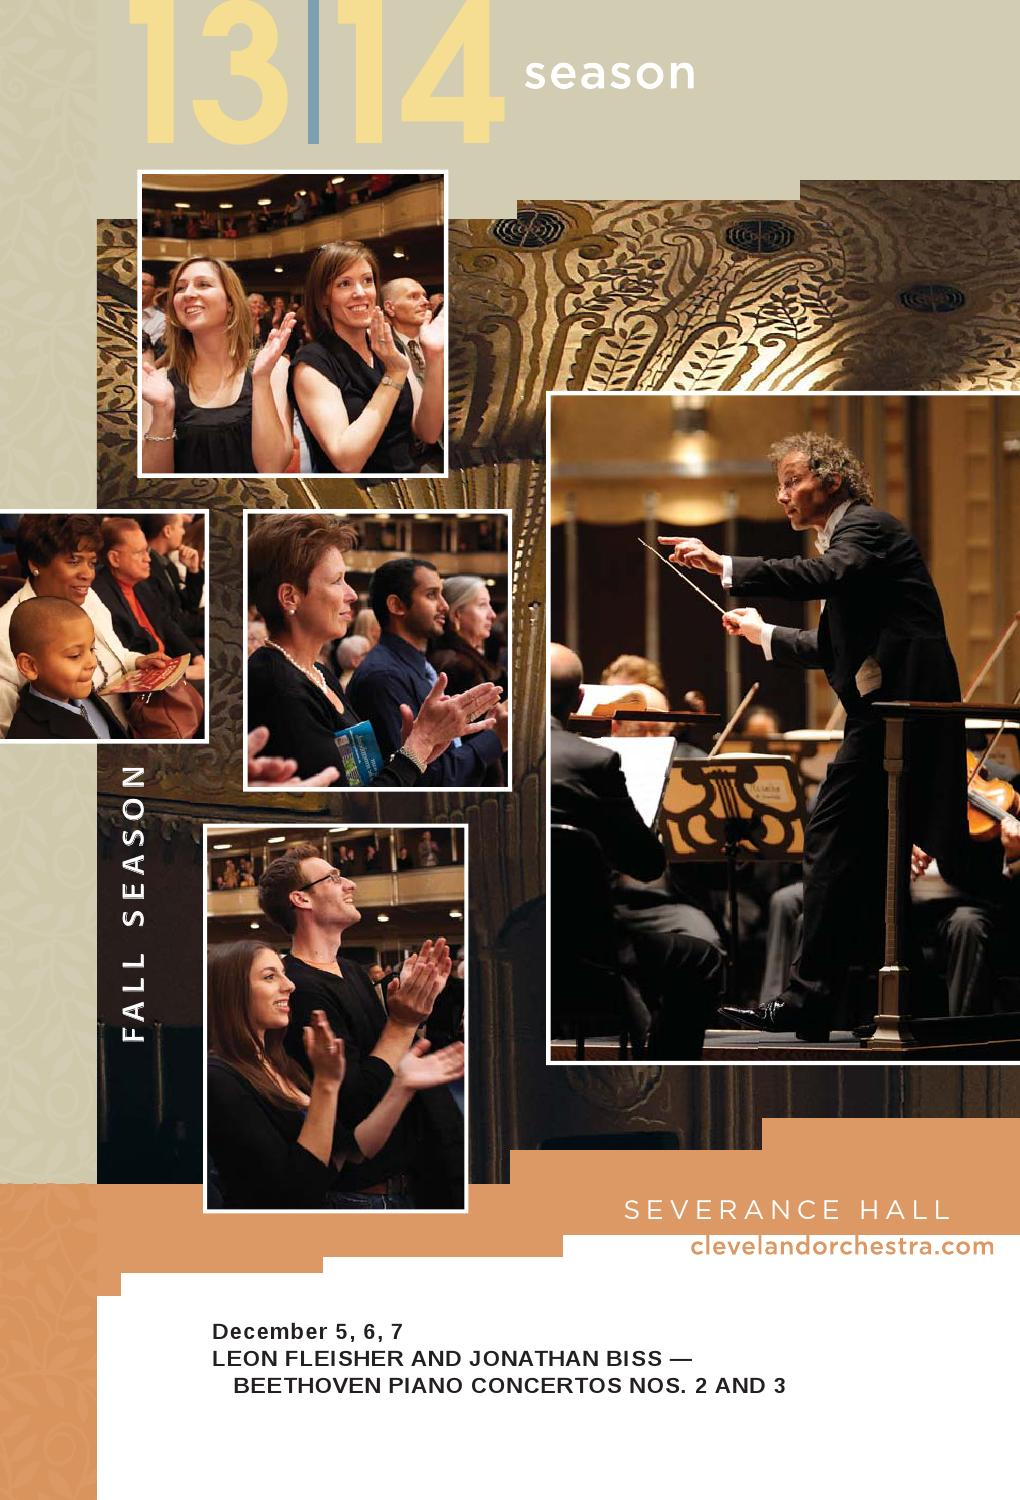 Nissan Of Streetsboro >> The Cleveland Orchestra December 5, 6, 7 Concerts by Live